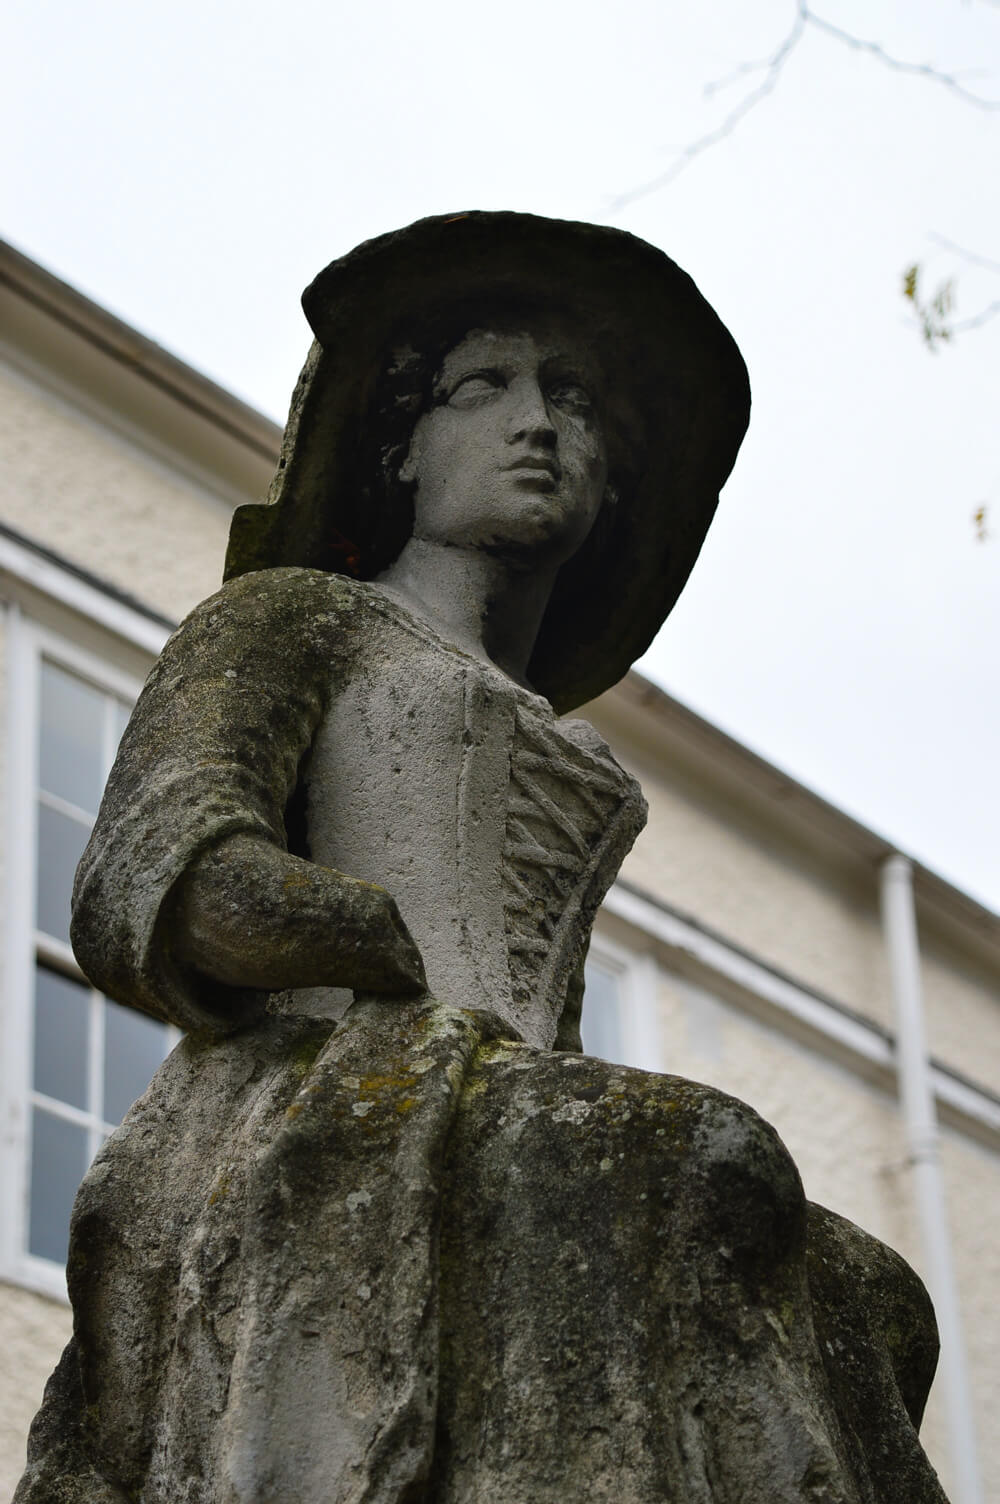 Statue at at Waterlow Park, Hampstead, London